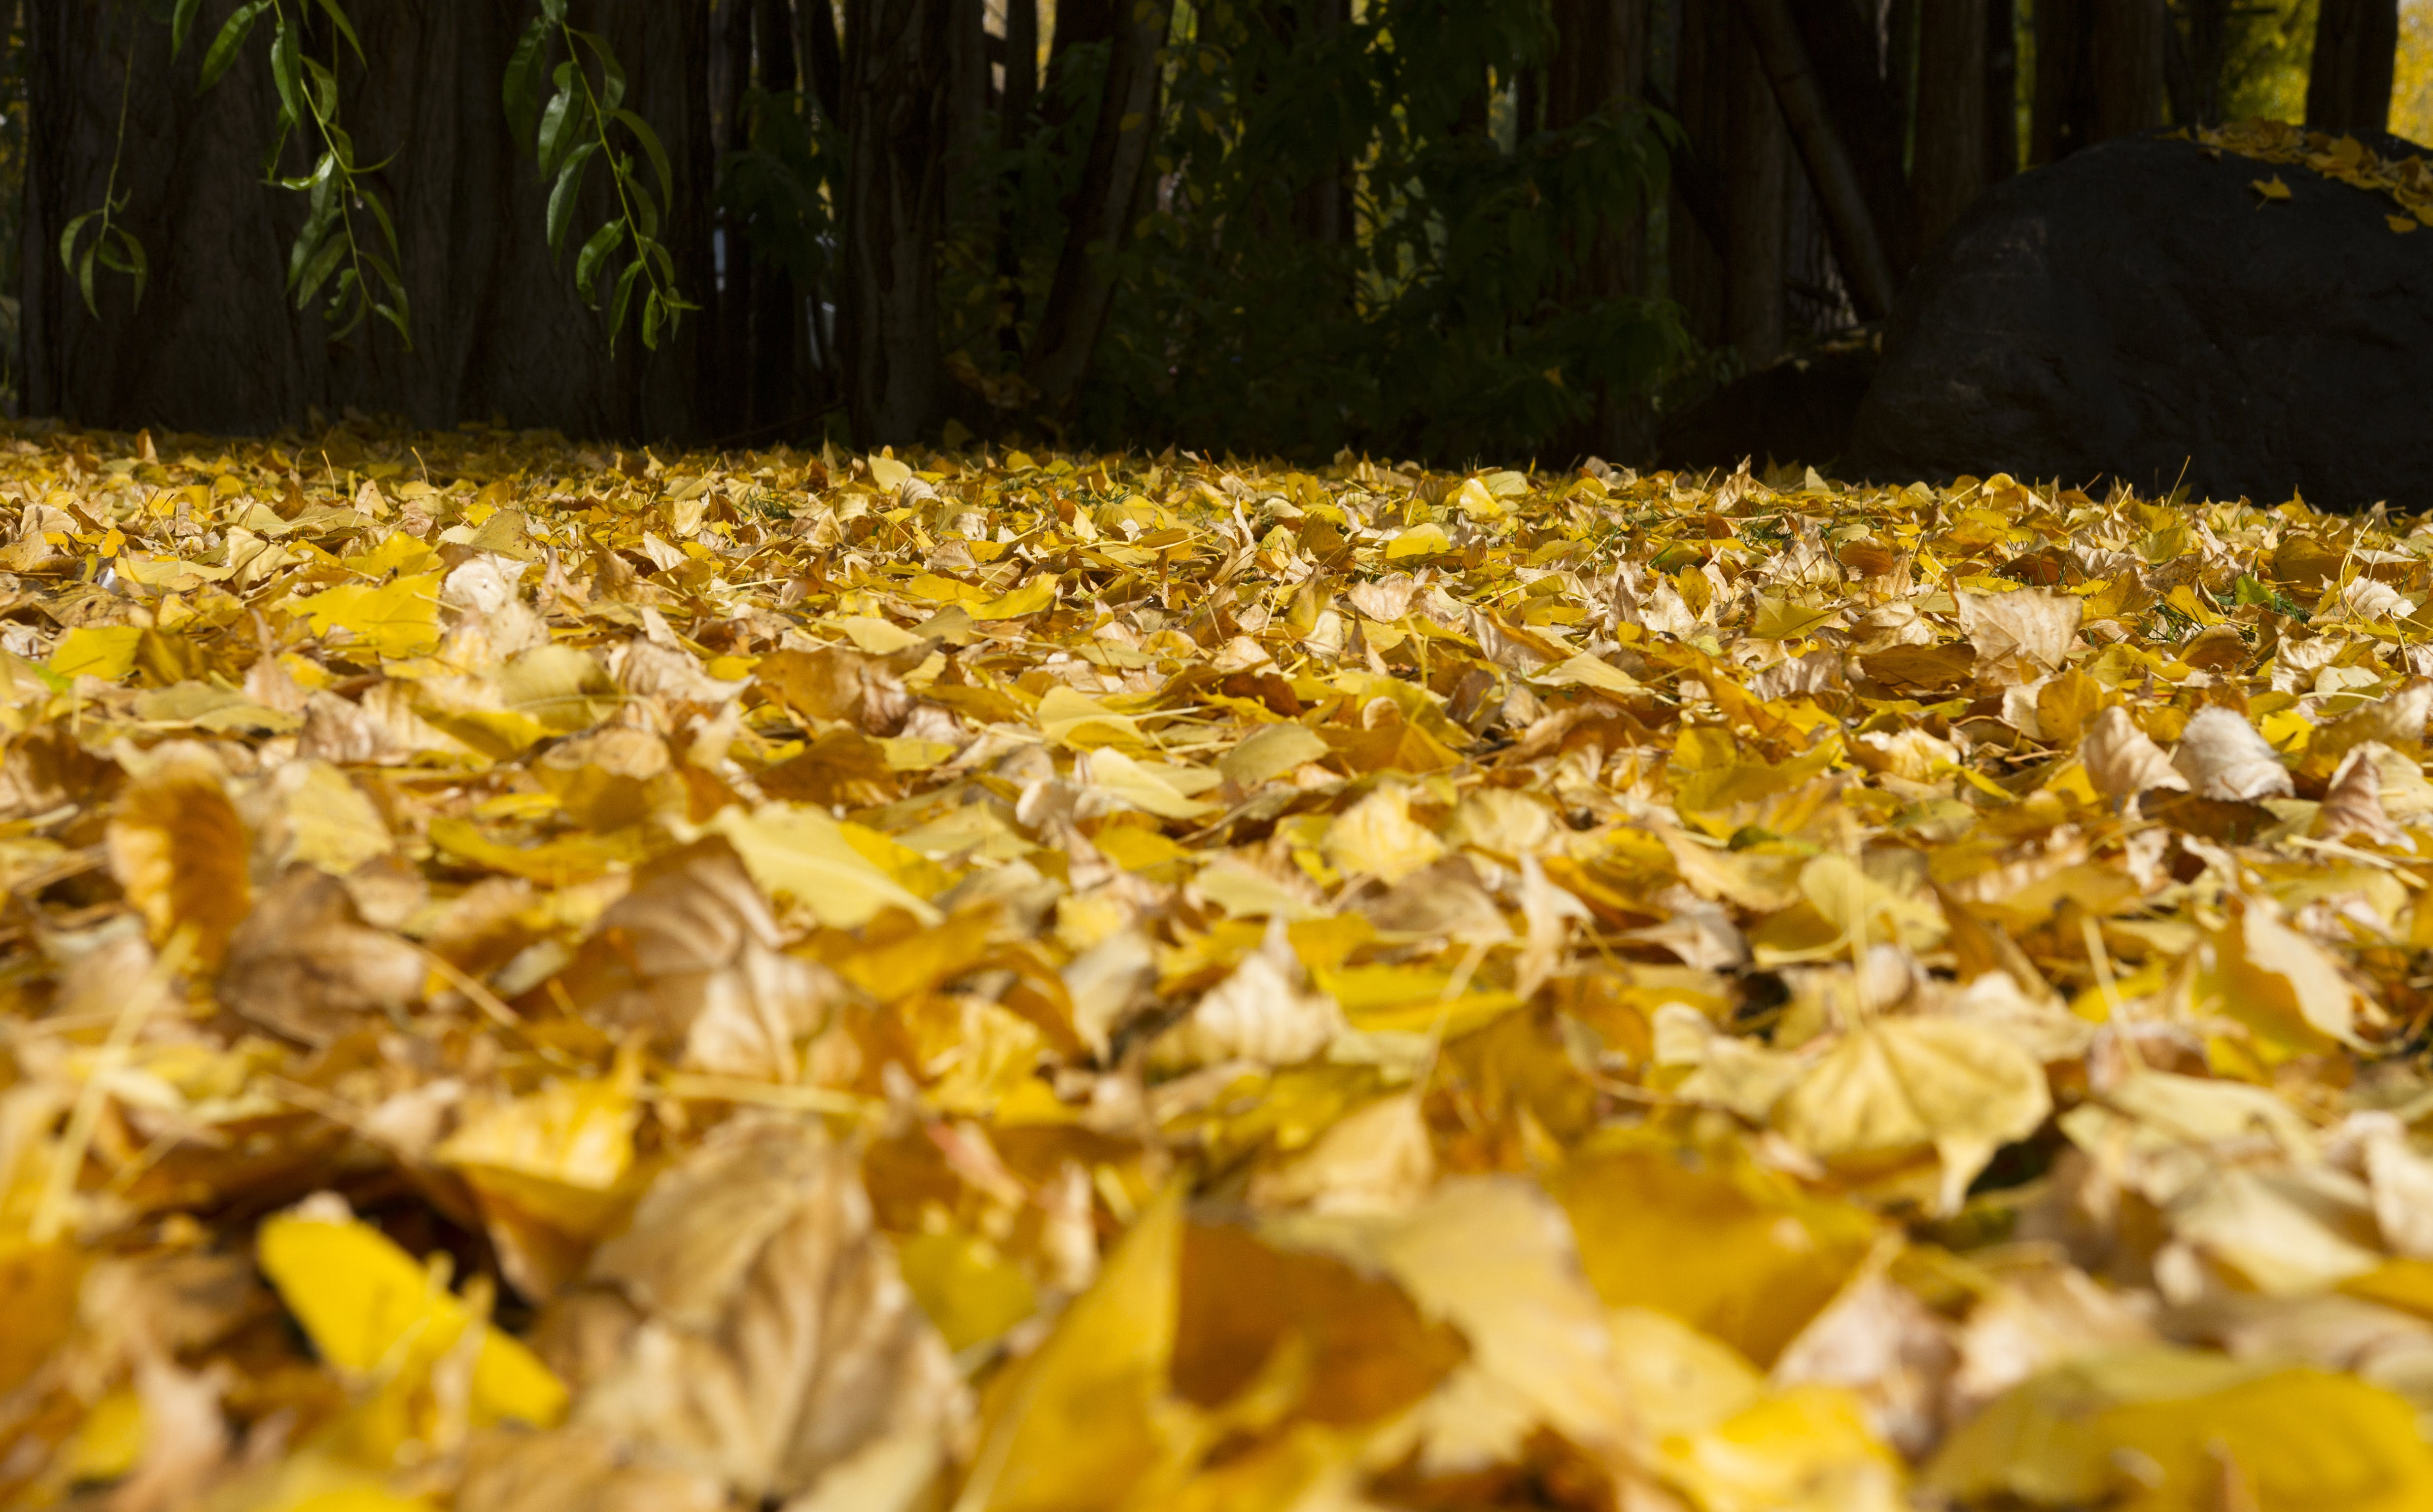 Free stock photo of nature, leaves, ground, floor